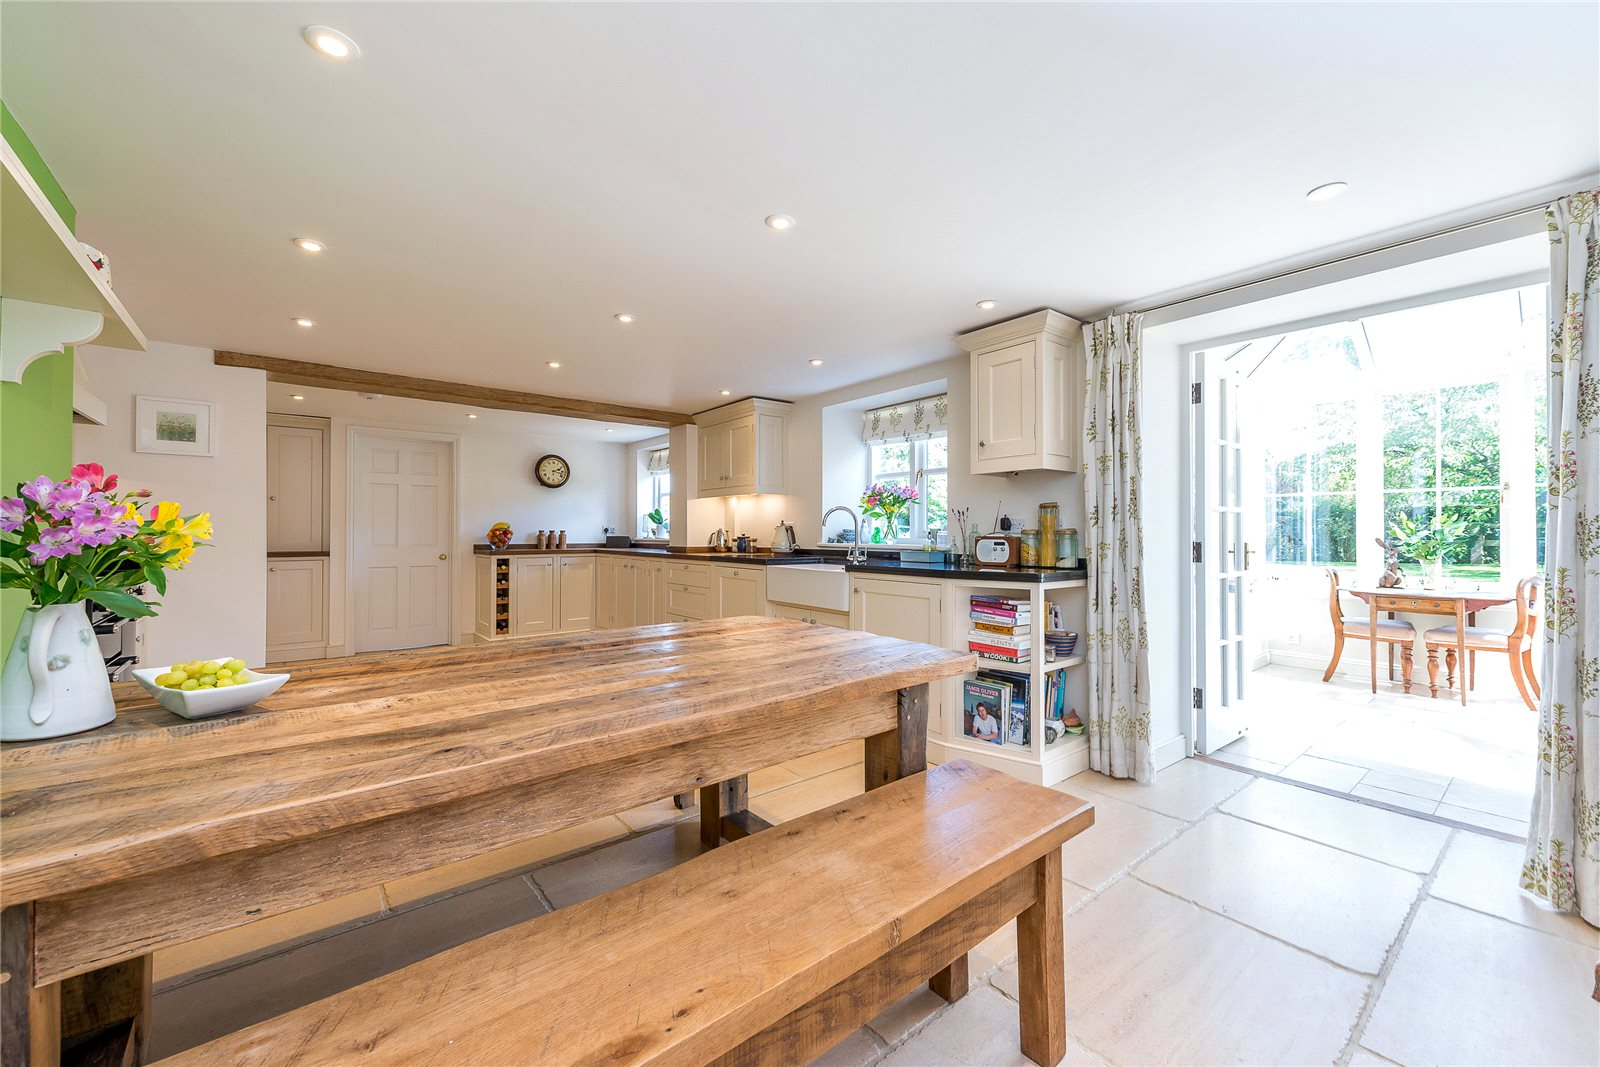 Additional photo for property listing at Tetbury Lane, Crudwell, Malmesbury, Wiltshire, SN16 Malmesbury, Angleterre